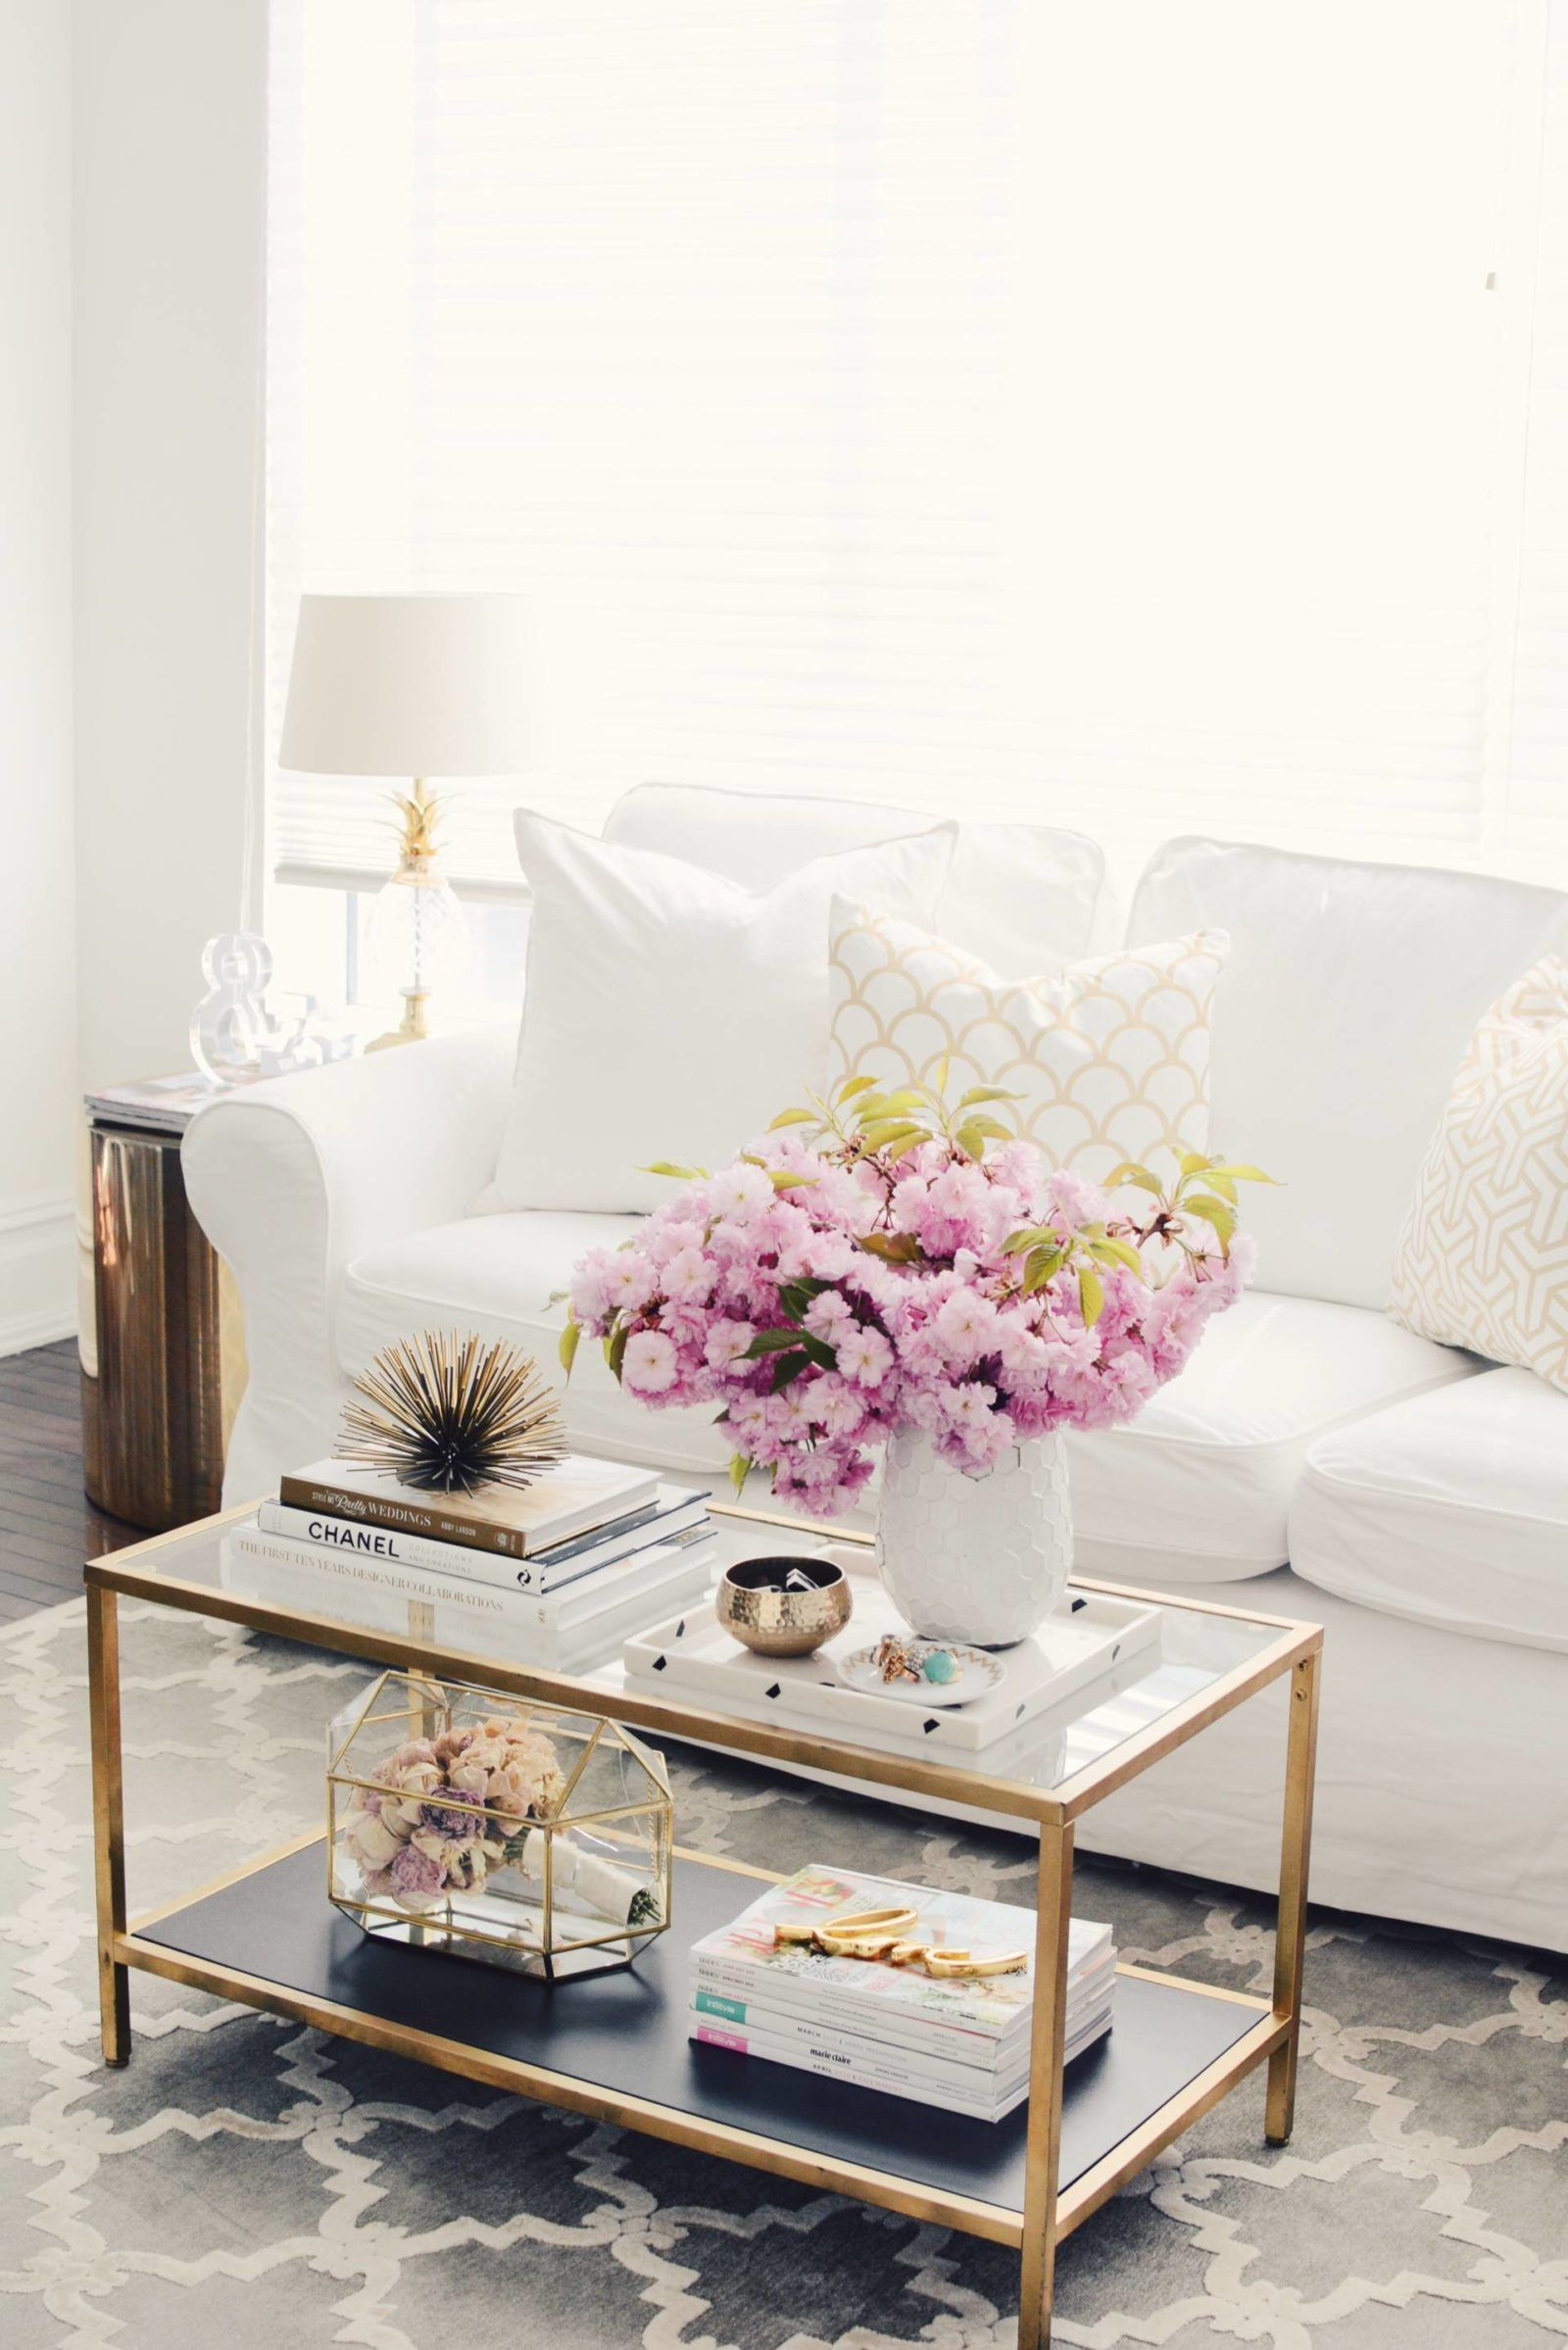 10 Modern Home Decorating Ideas That Ll Transform Any Traditional Space With Images: Table Decor Living Room, Room Decor, Decor